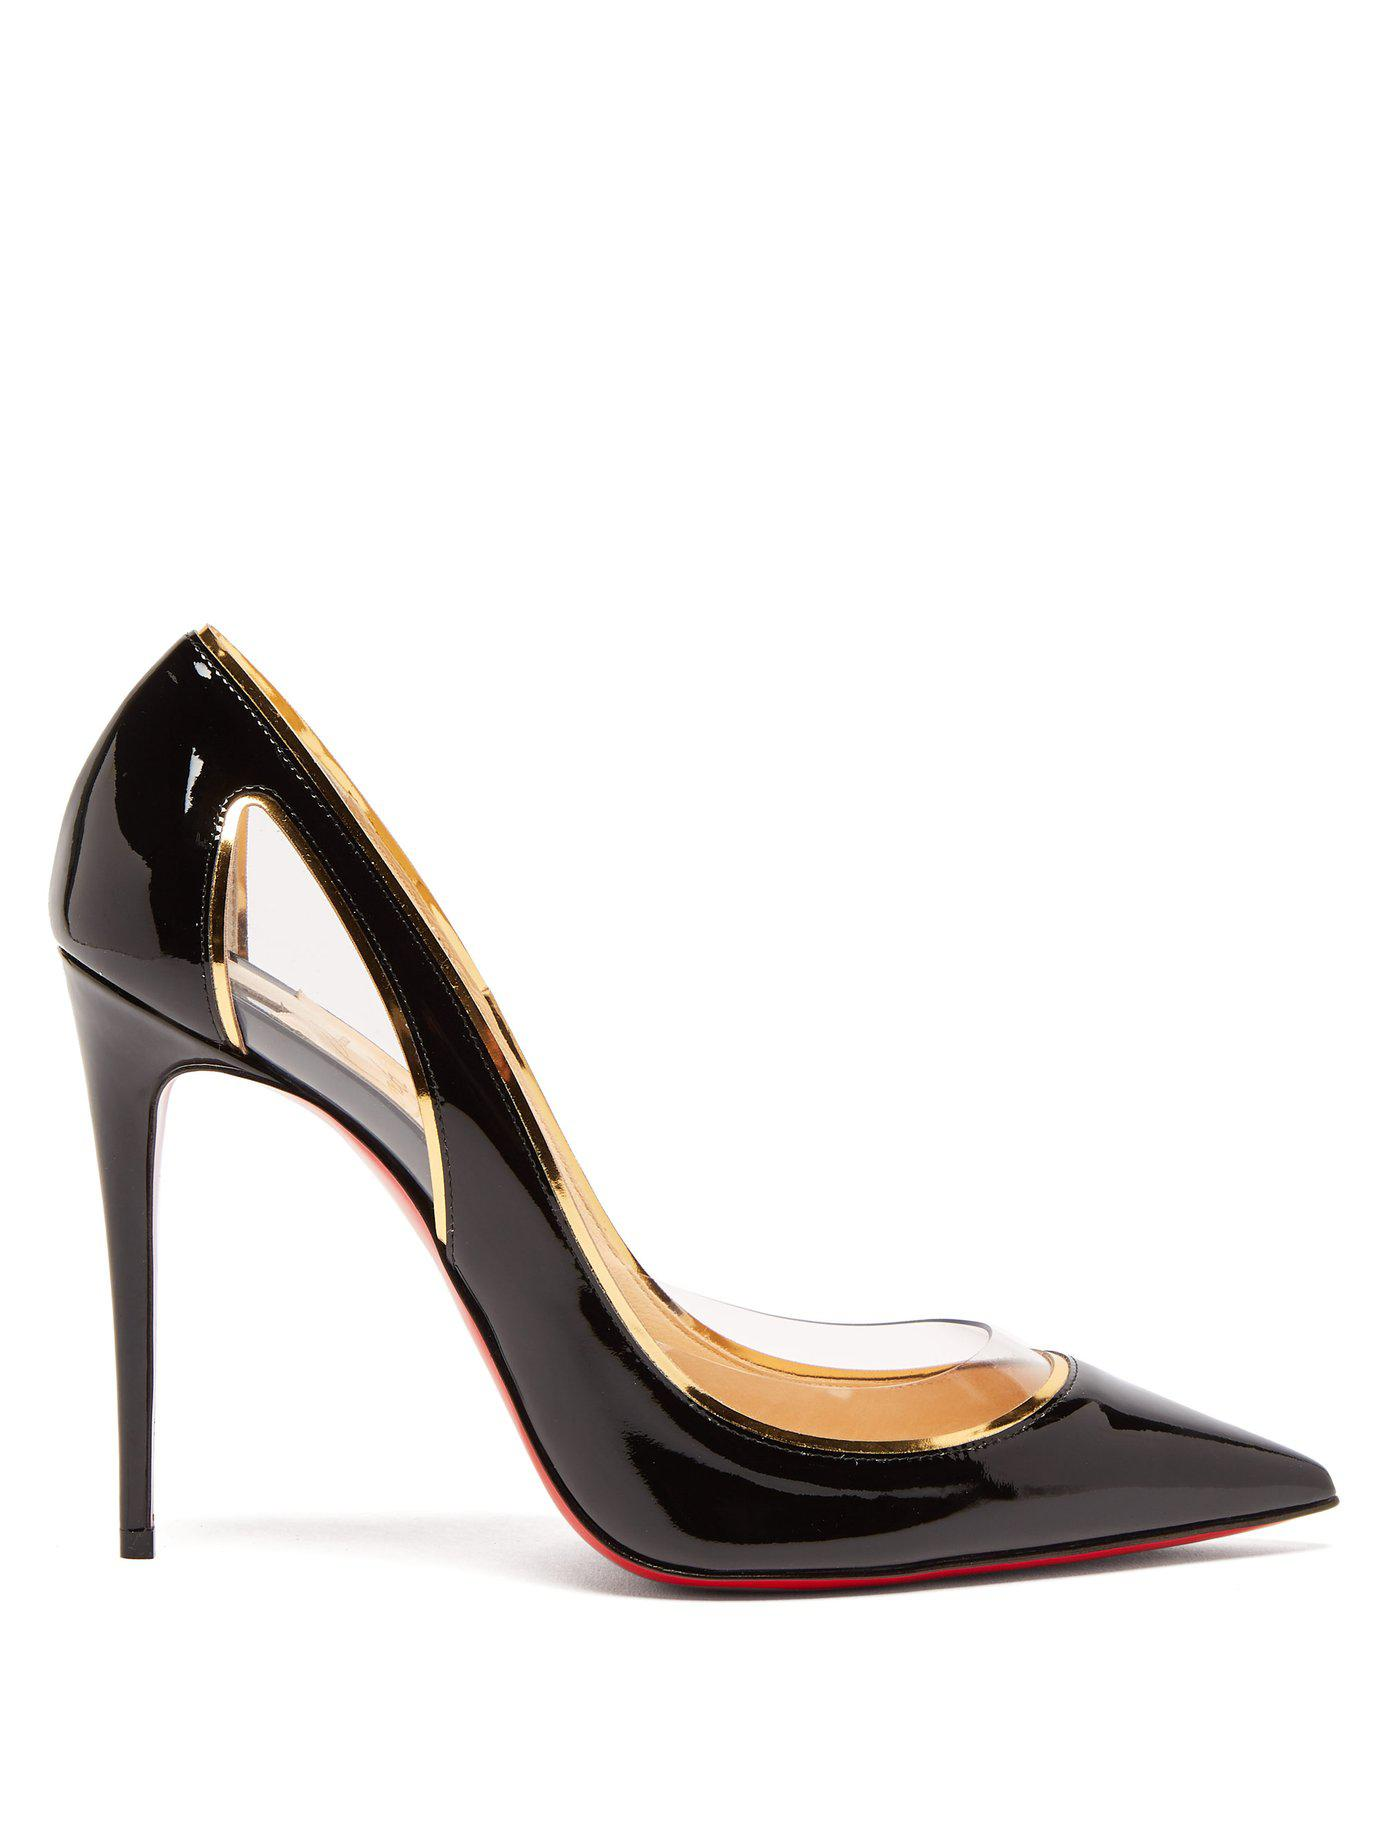 072c4419581 Christian Louboutin Cosmo 554 100 Patent Leather Pumps in Black - Lyst